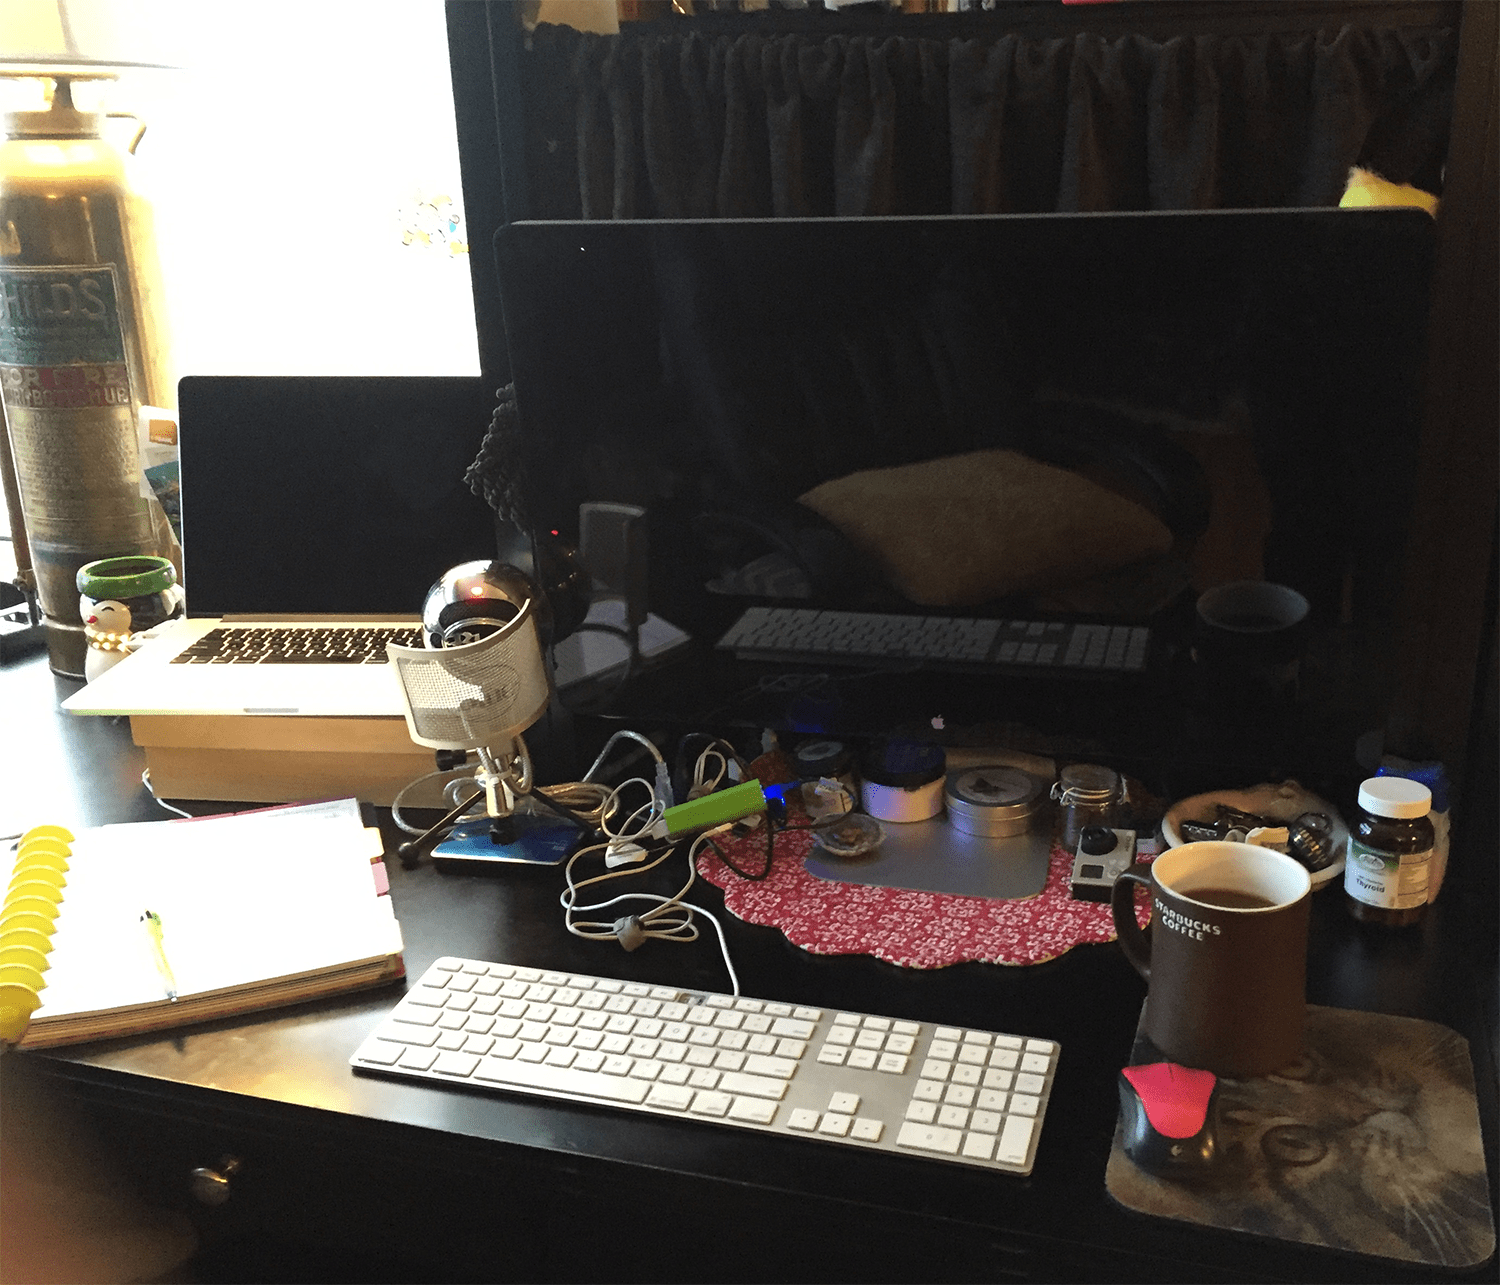 My business desk area - work station